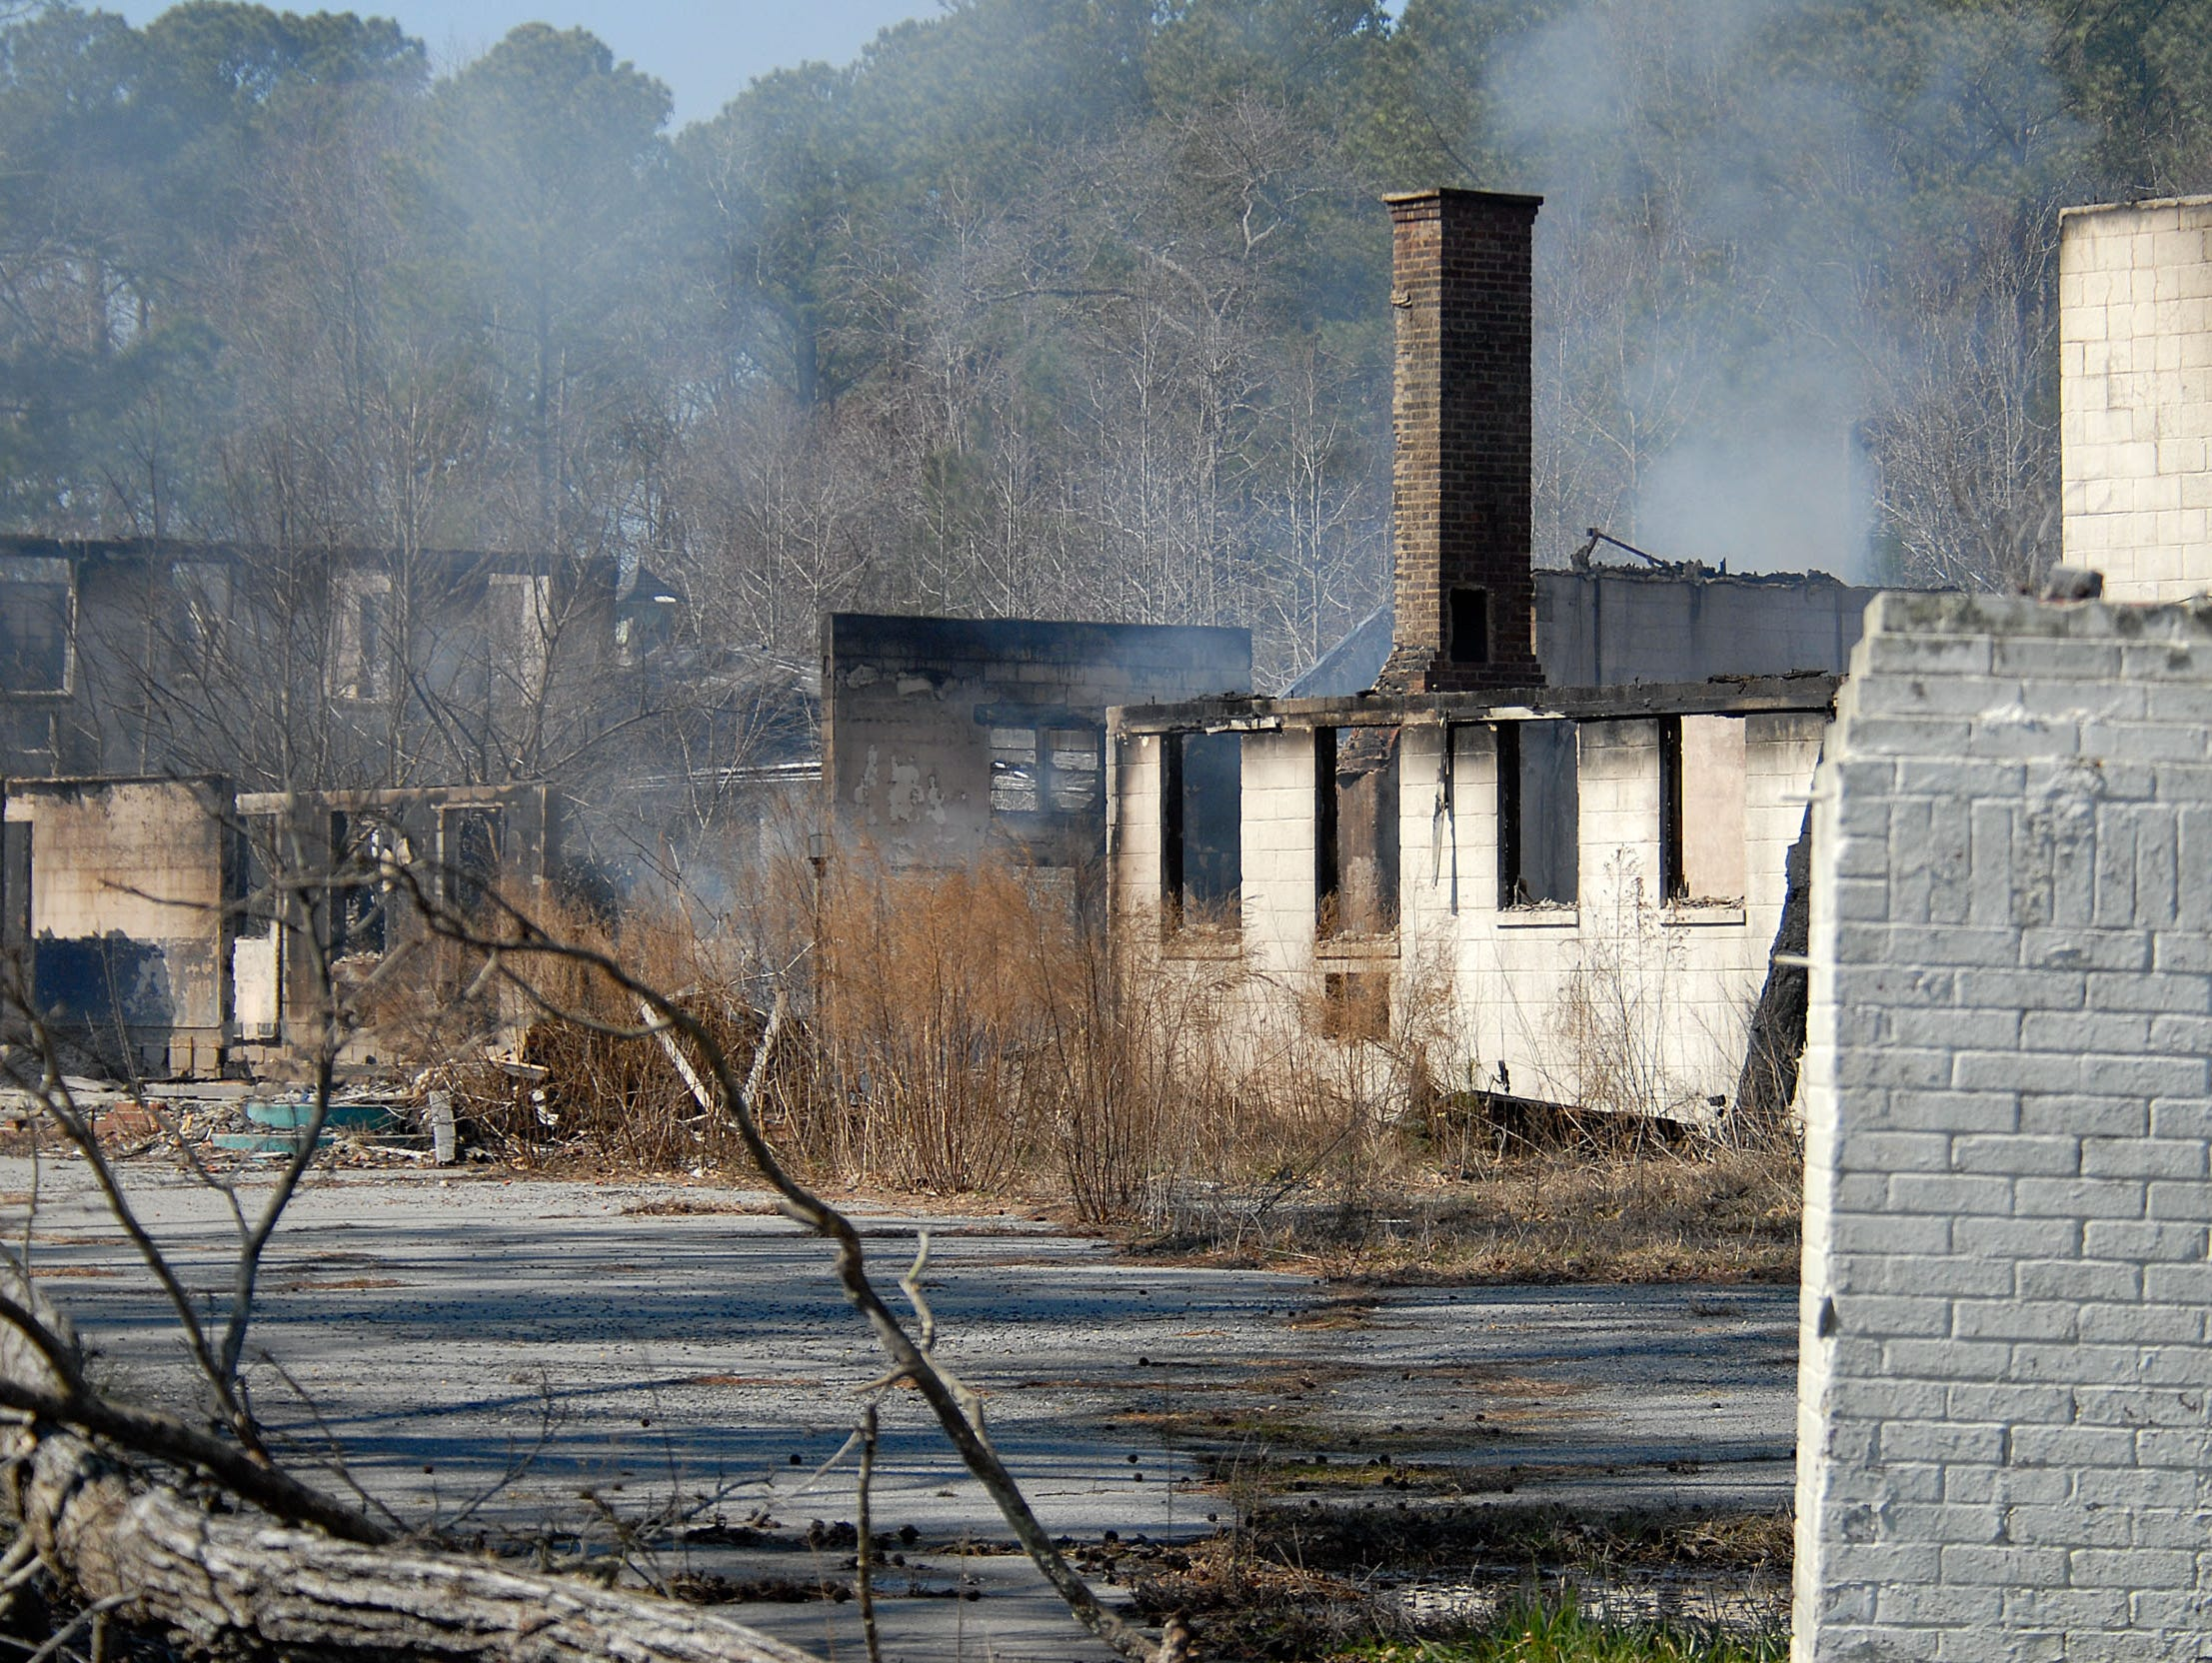 ...And this is what the property looks like the day after fire swept through the structure. Police are investigating the fire that destroyed the well-known Whispering Pines Motel as an arson.